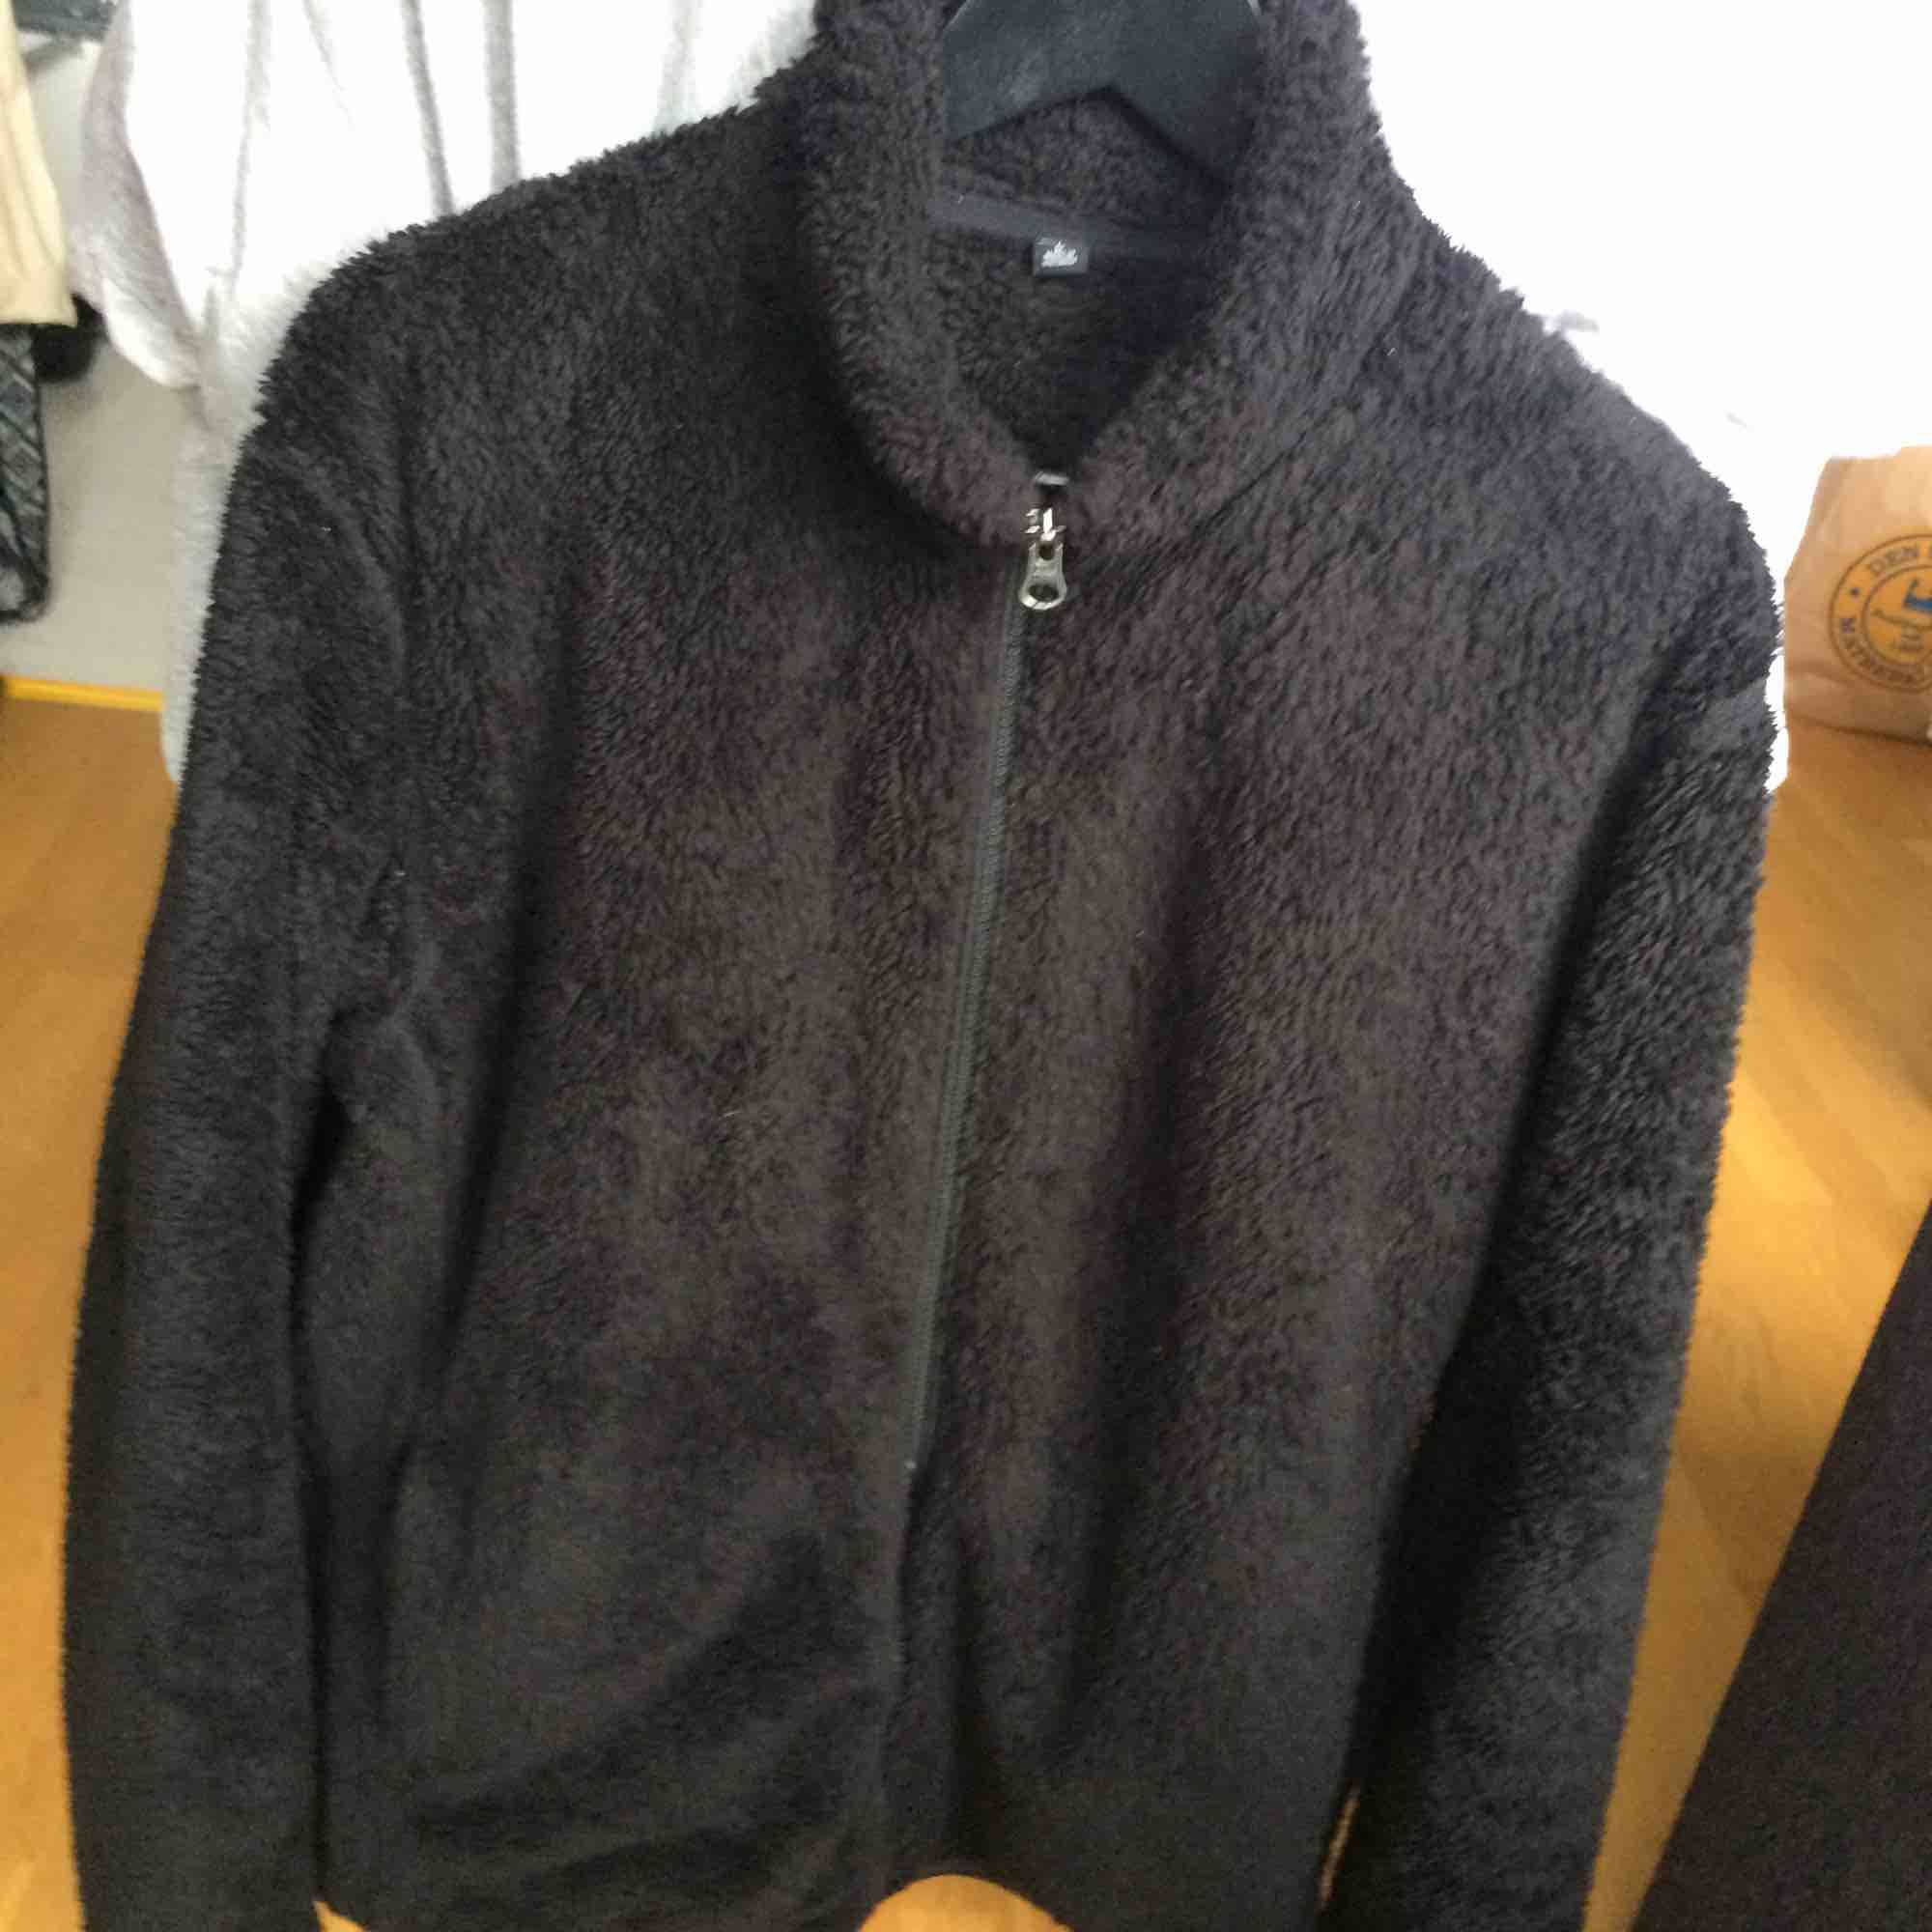 Black uniqlo fleece, 9/10 condition. Will mail at buyers expense . Jackor.